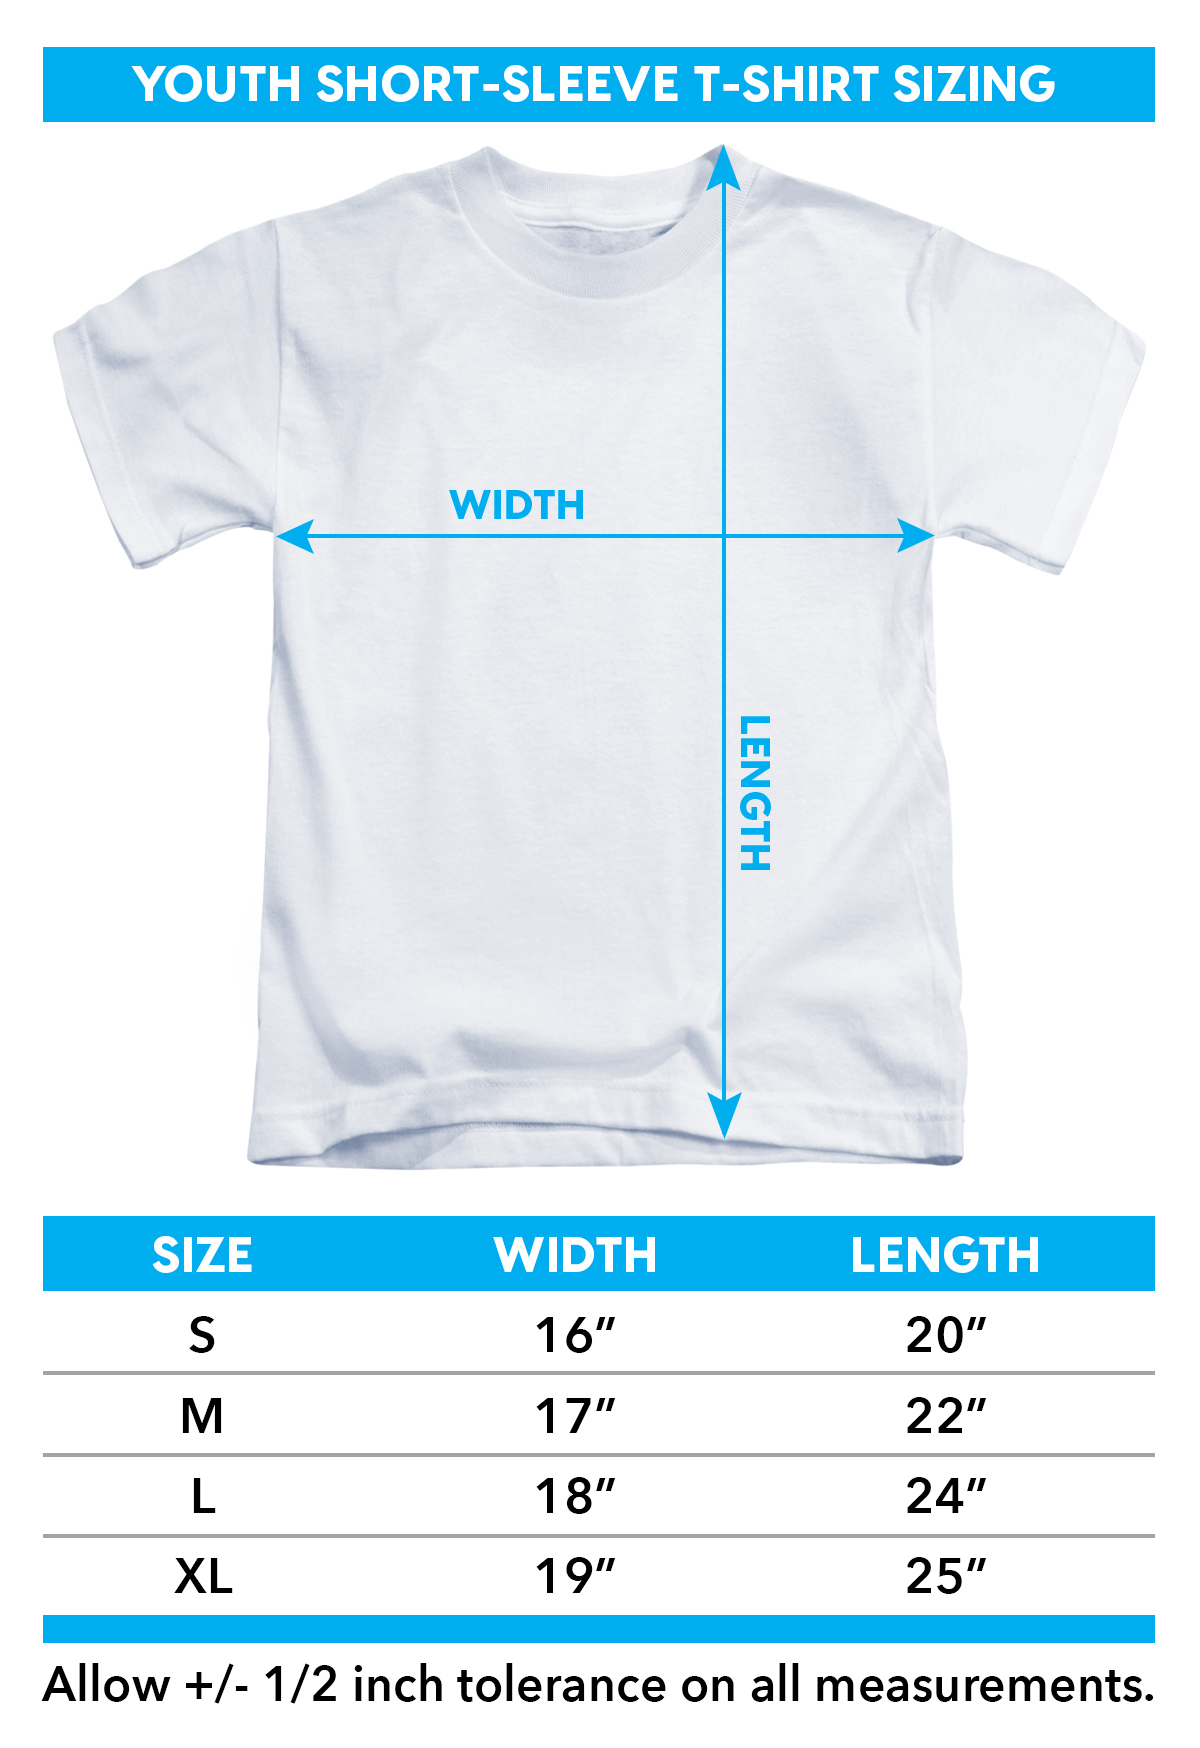 Sizing chart for Betty Boop Youth T-Shirt - Blah Blah Blah TRV-BB457-YT